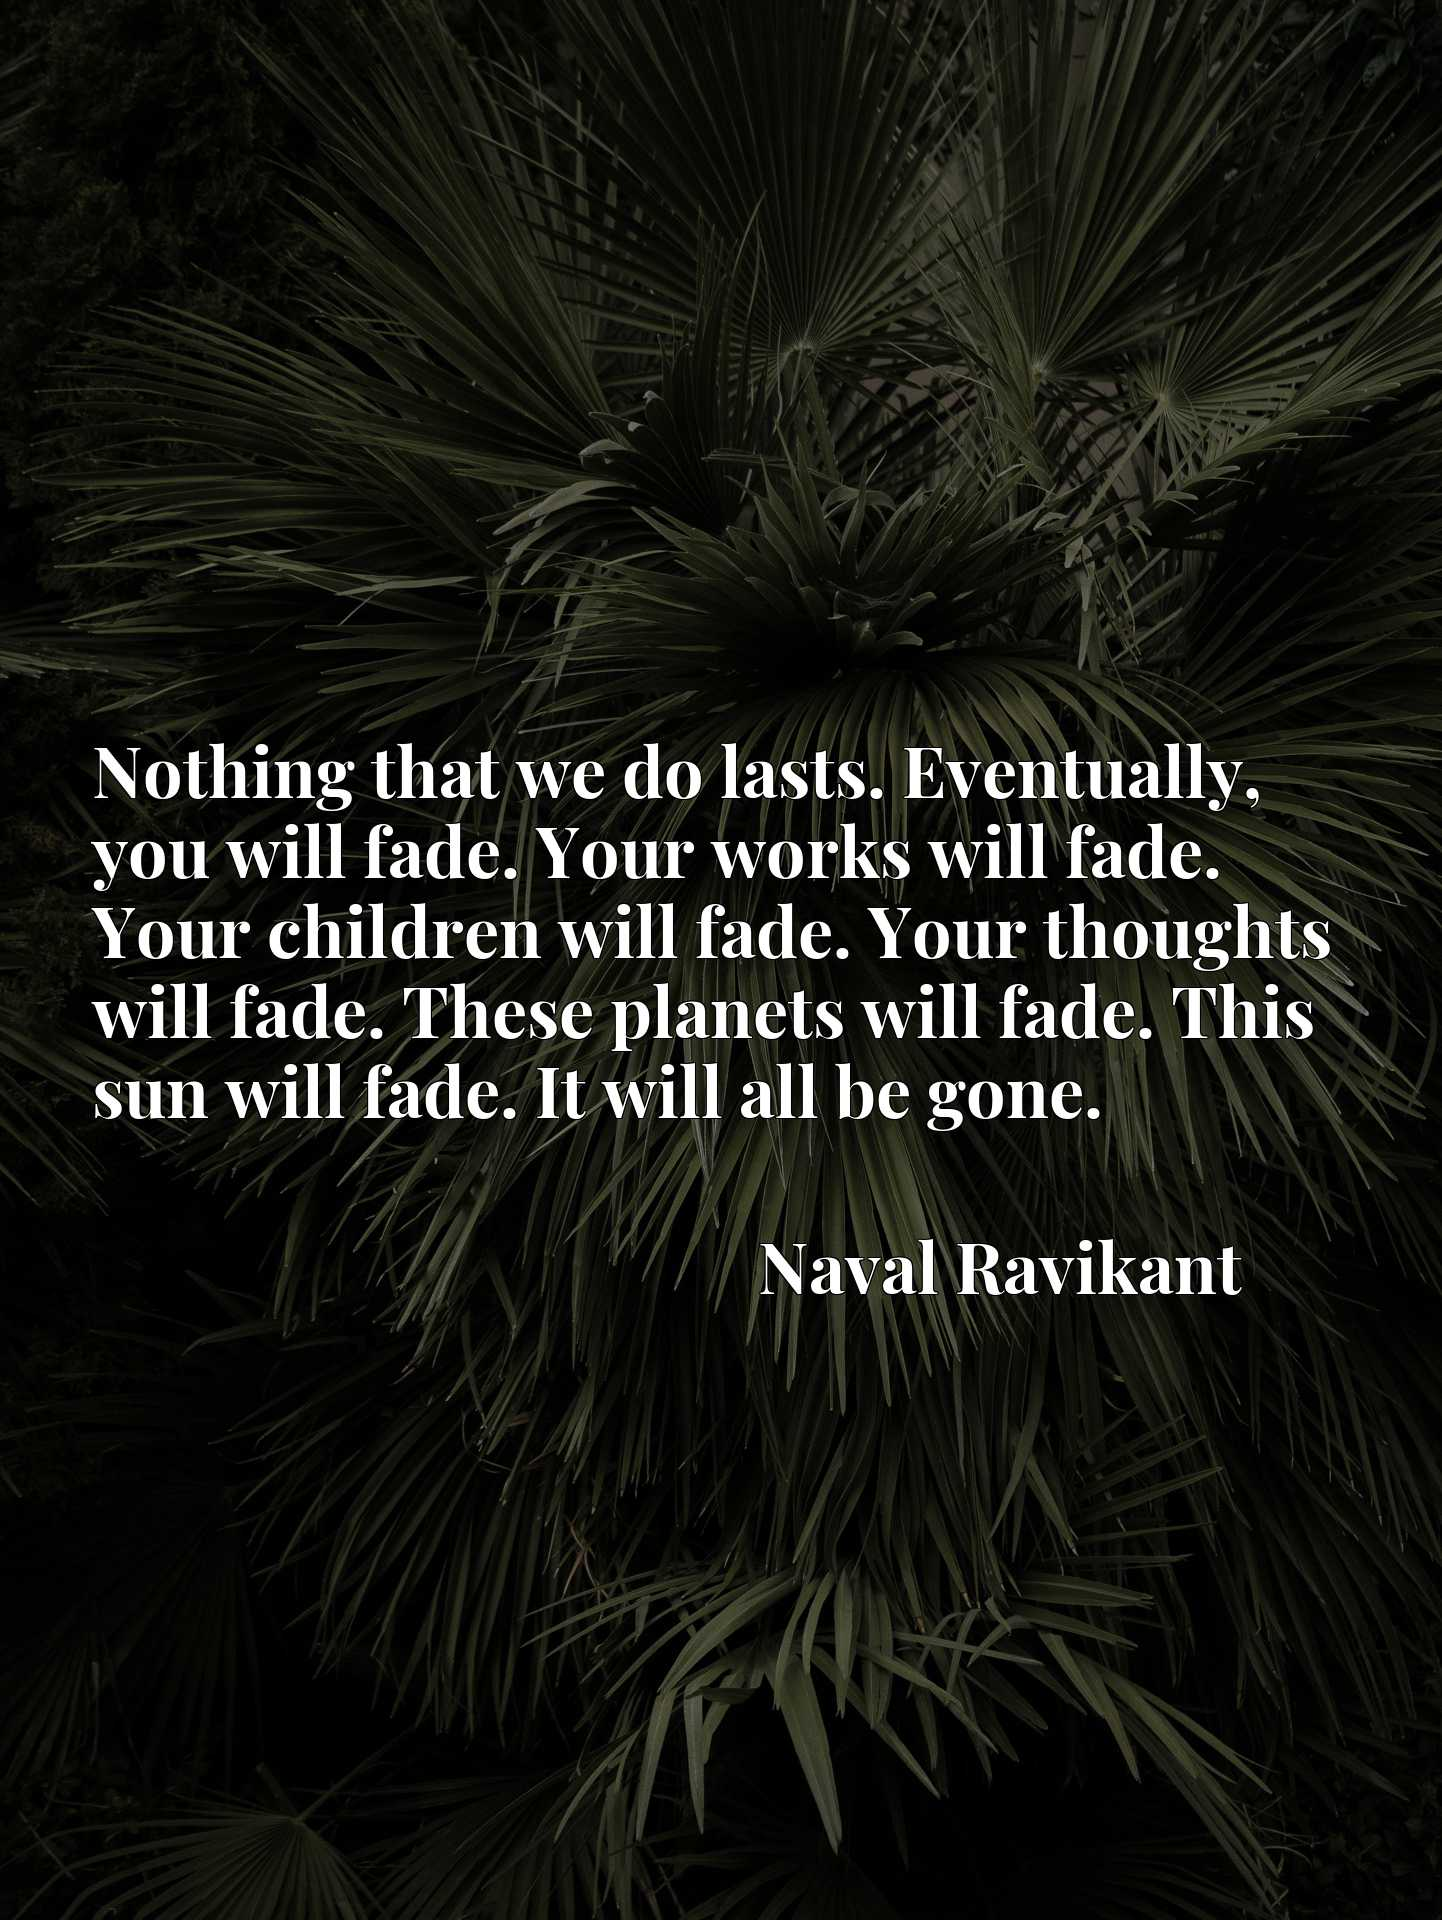 Nothing that we do lasts. Eventually, you will fade. Your works will fade. Your children will fade. Your thoughts will fade. These planets will fade. This sun will fade. It will all be gone.